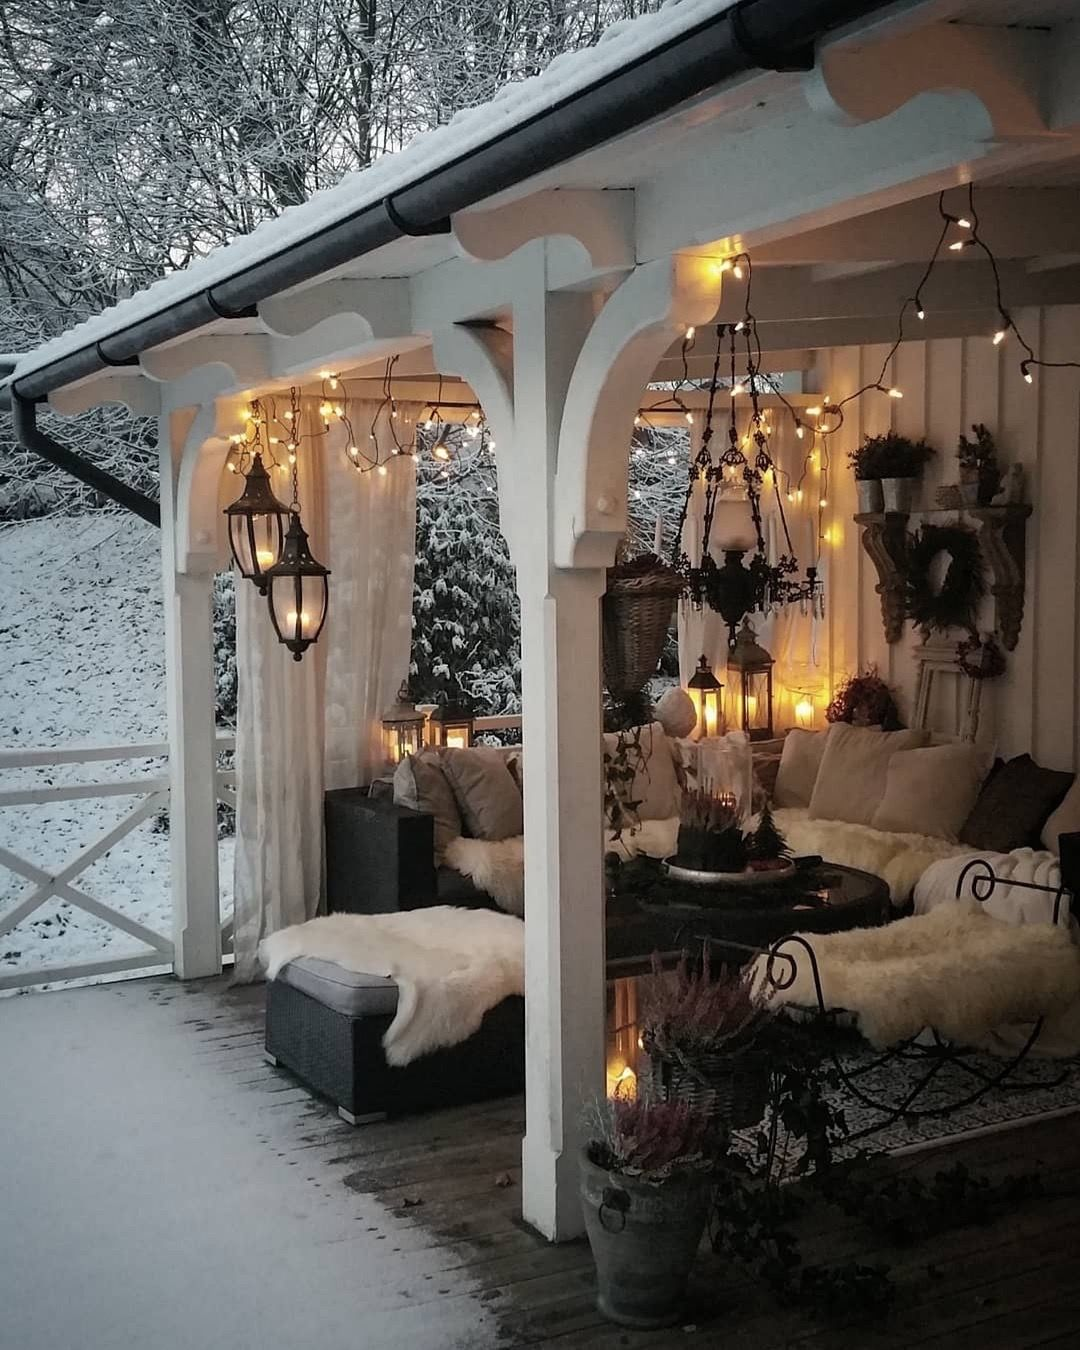 My backyard decor also best home images in rh pinterest